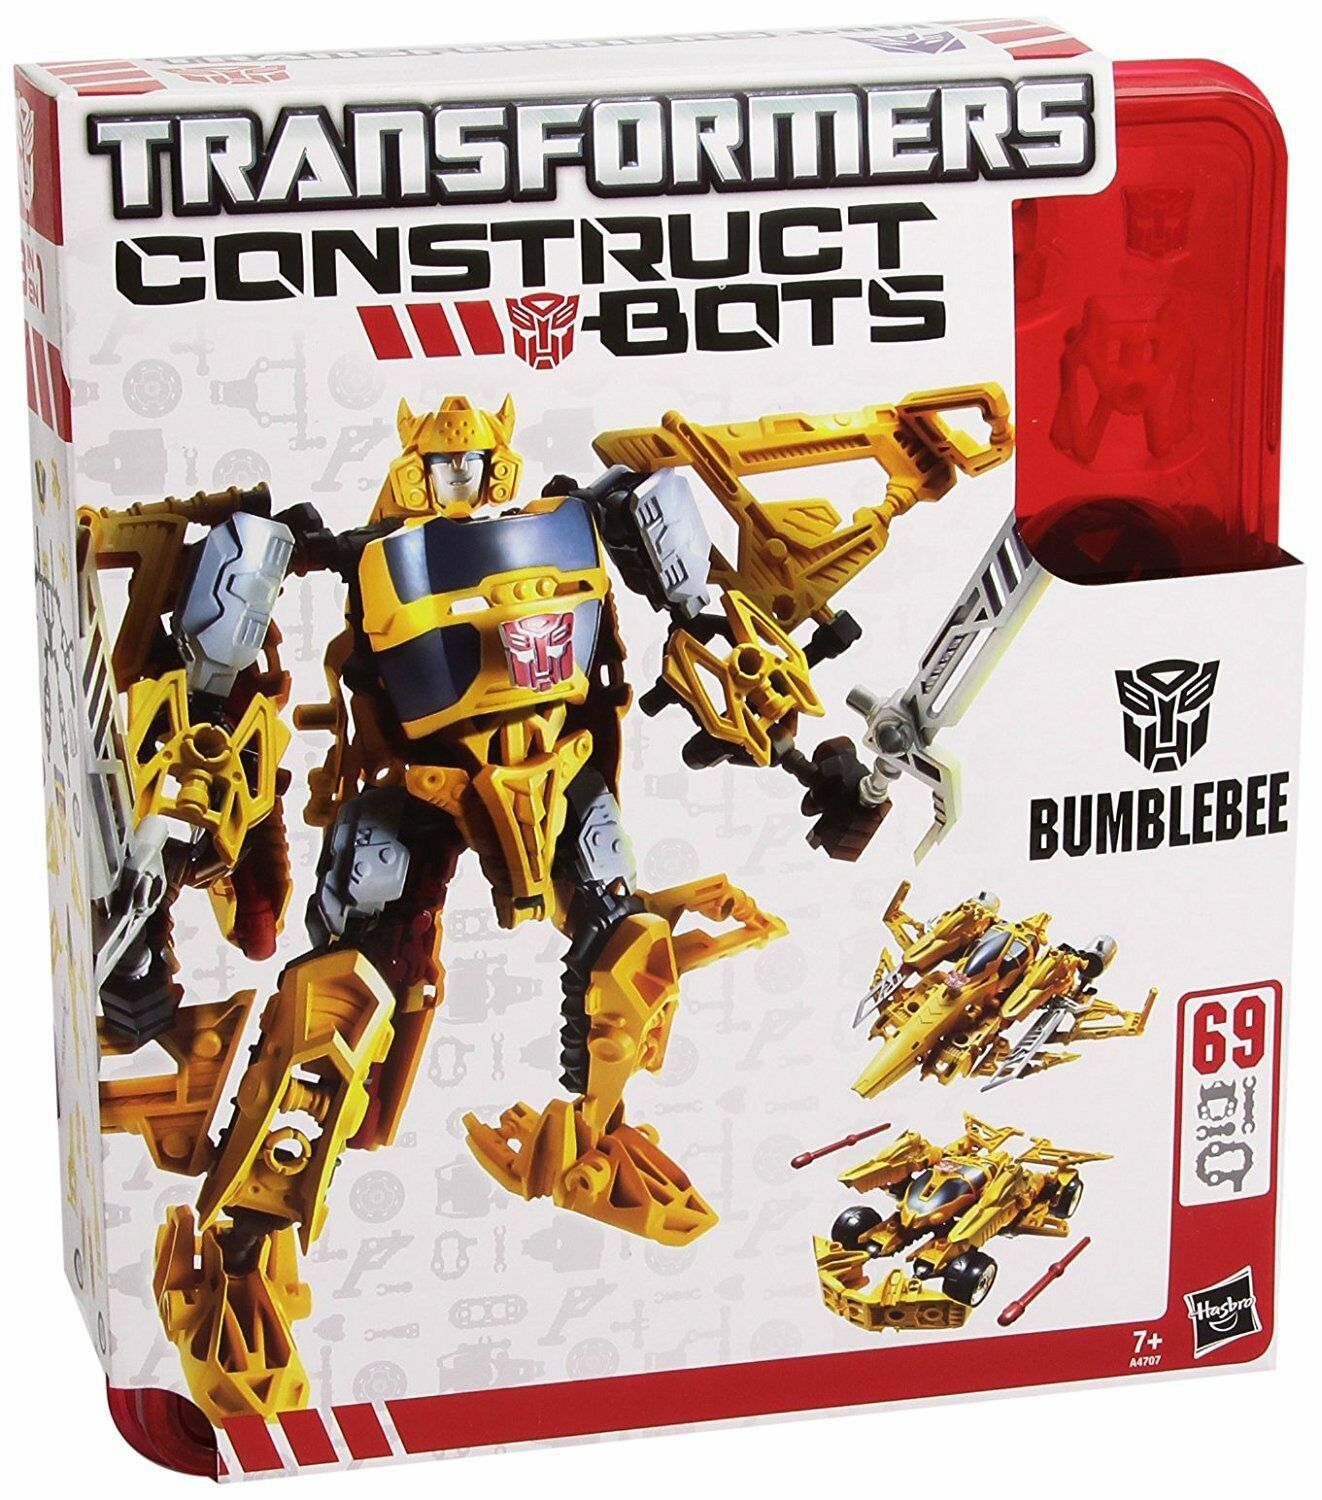 Transformers Construct-Bots Triple changeurs Bumblebee